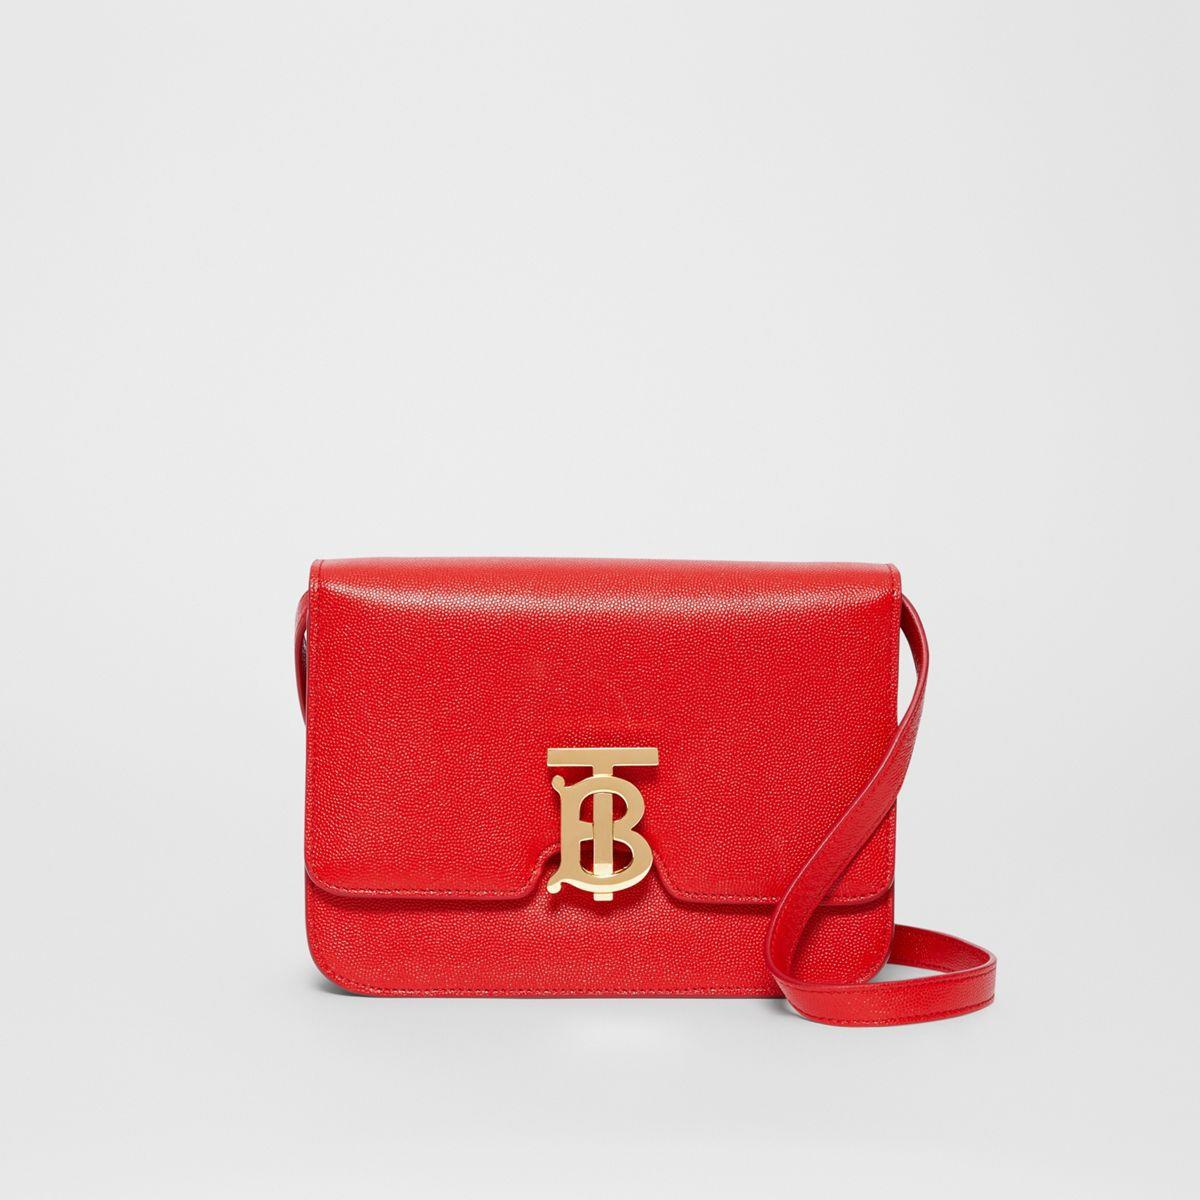 Small Grainy Leather TB Bag